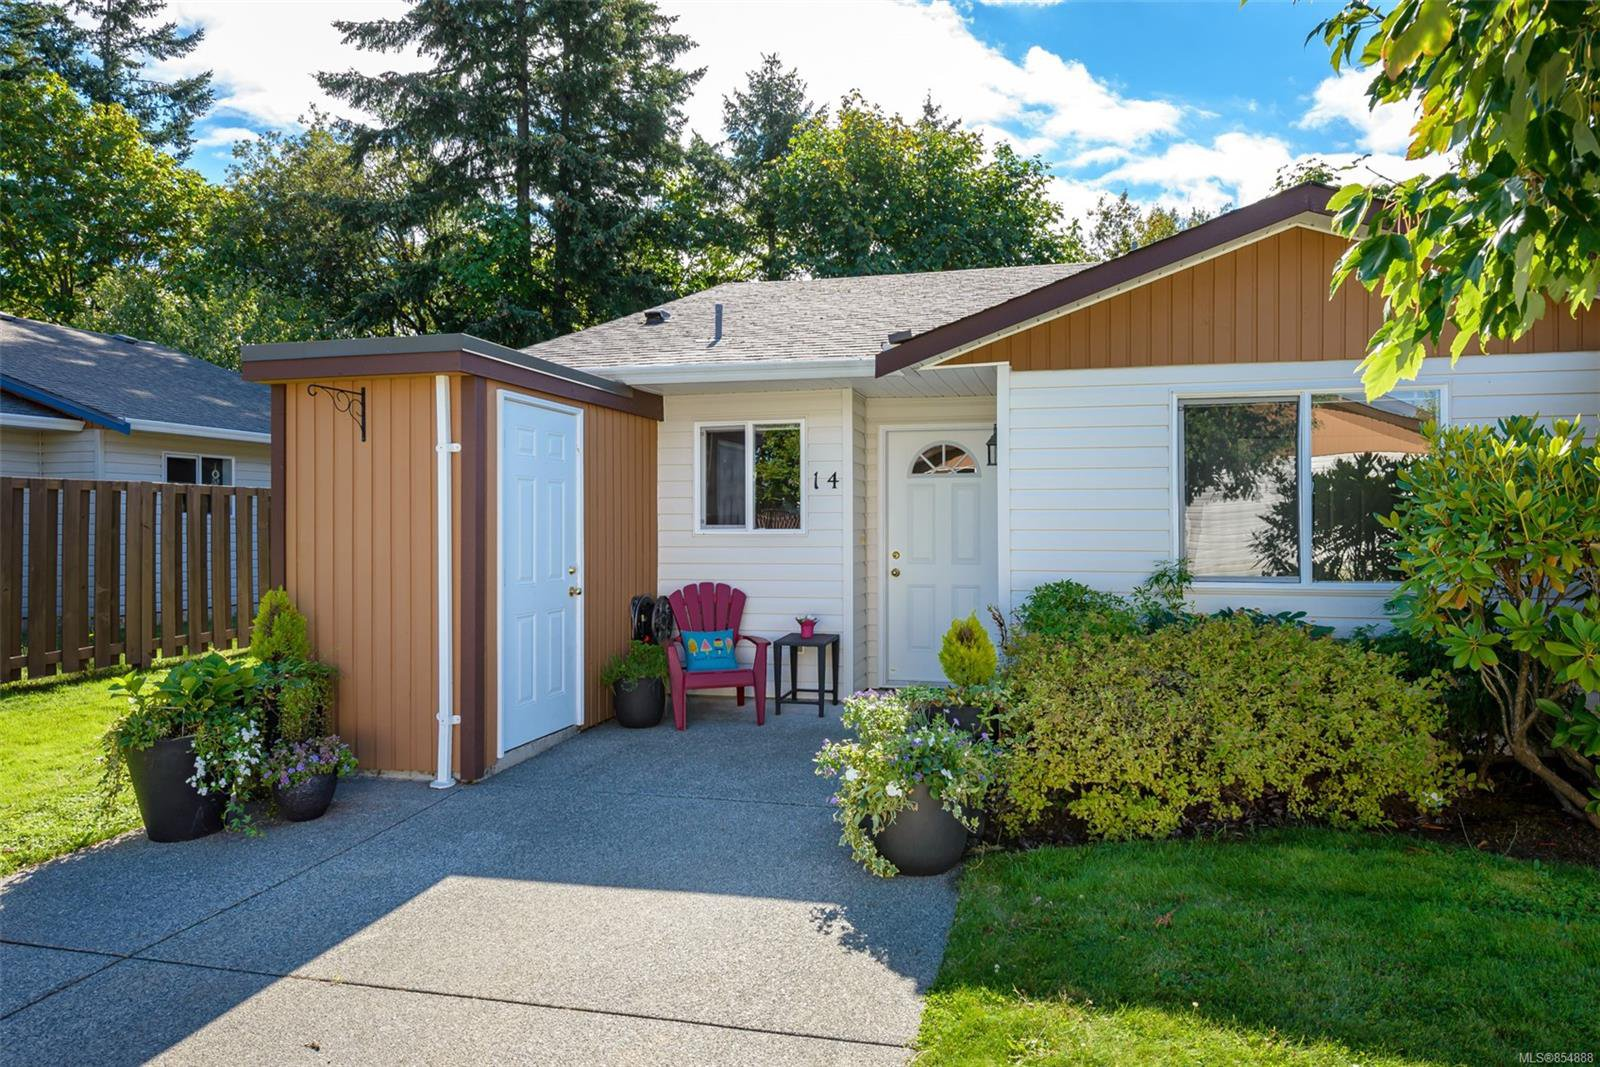 Main Photo: 14 2197 Murrelet Dr in : CV Comox (Town of) Row/Townhouse for sale (Comox Valley)  : MLS®# 854888